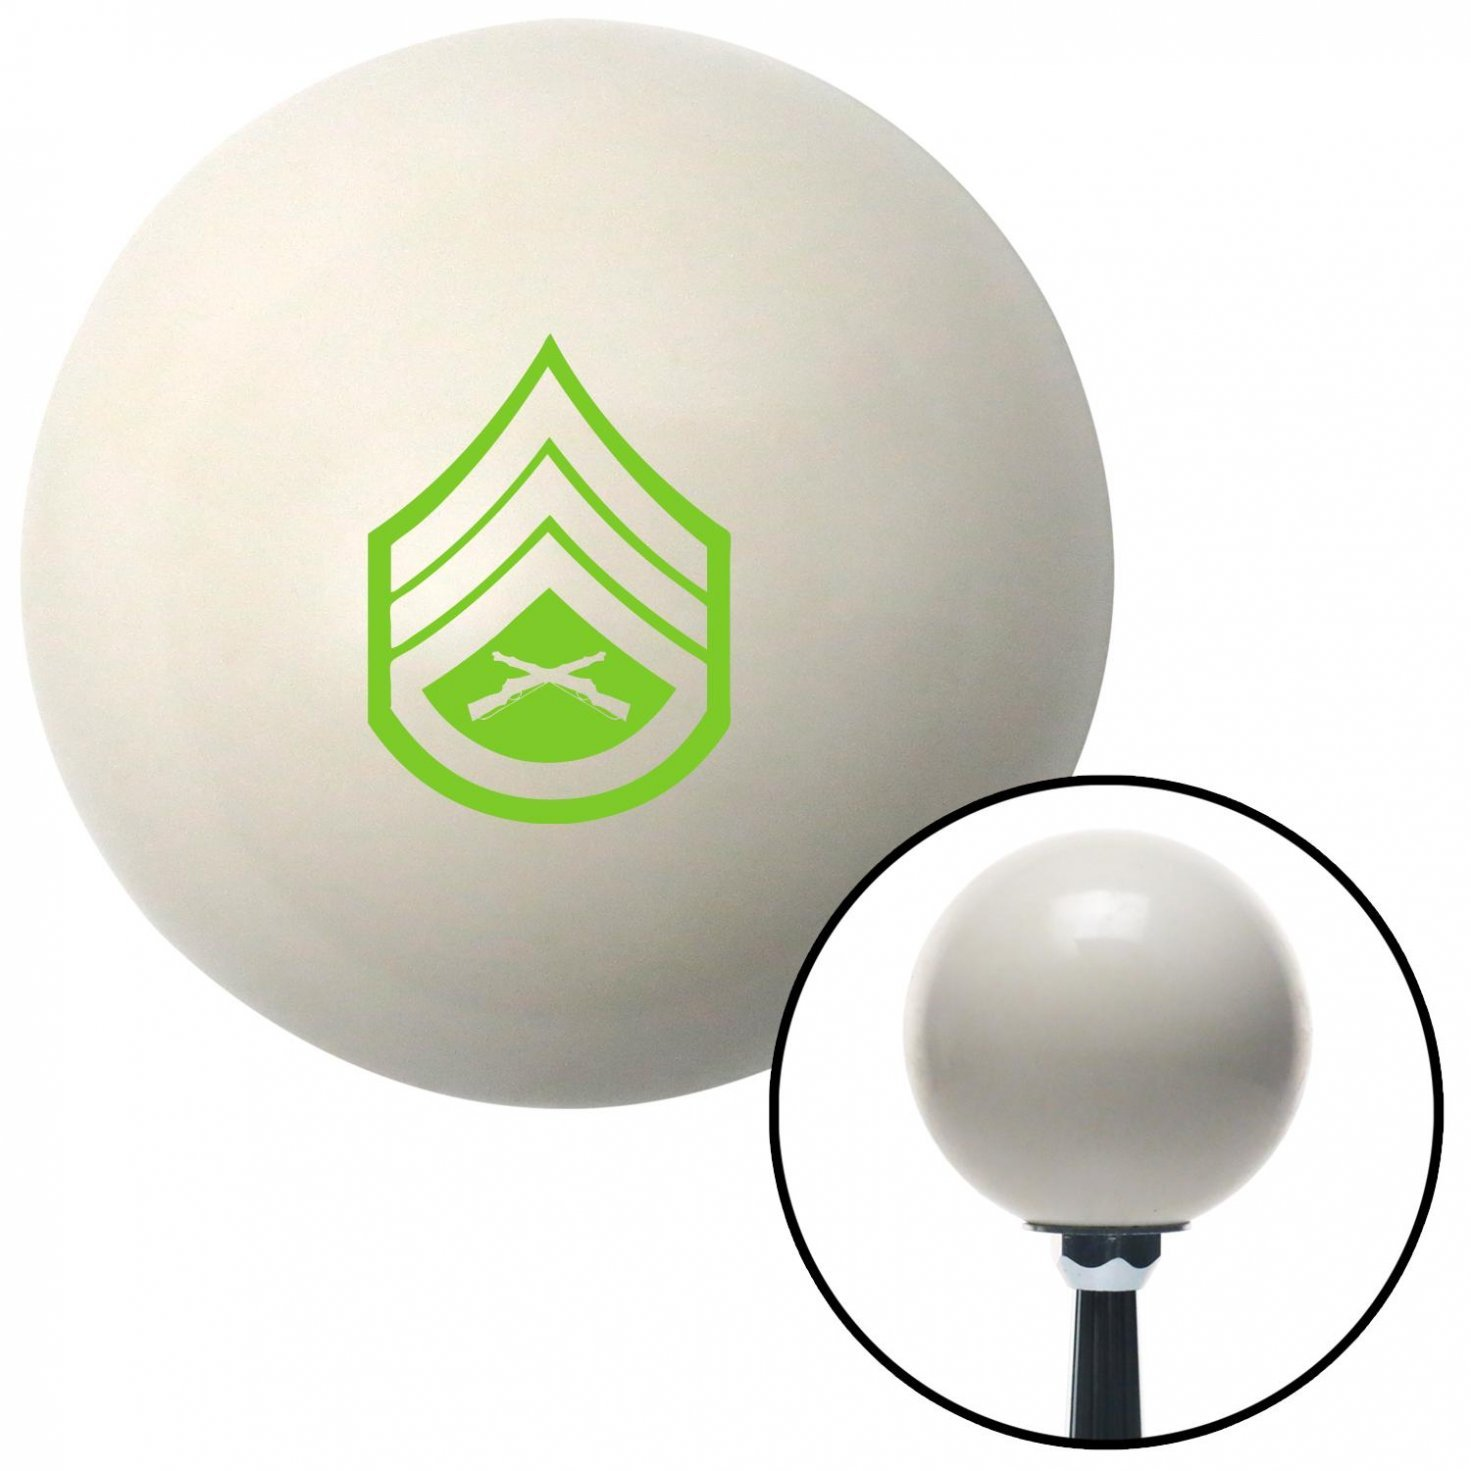 Green 05 Staff Sergeant American Shifter 40717 Ivory Shift Knob with 16mm x 1.5 Insert